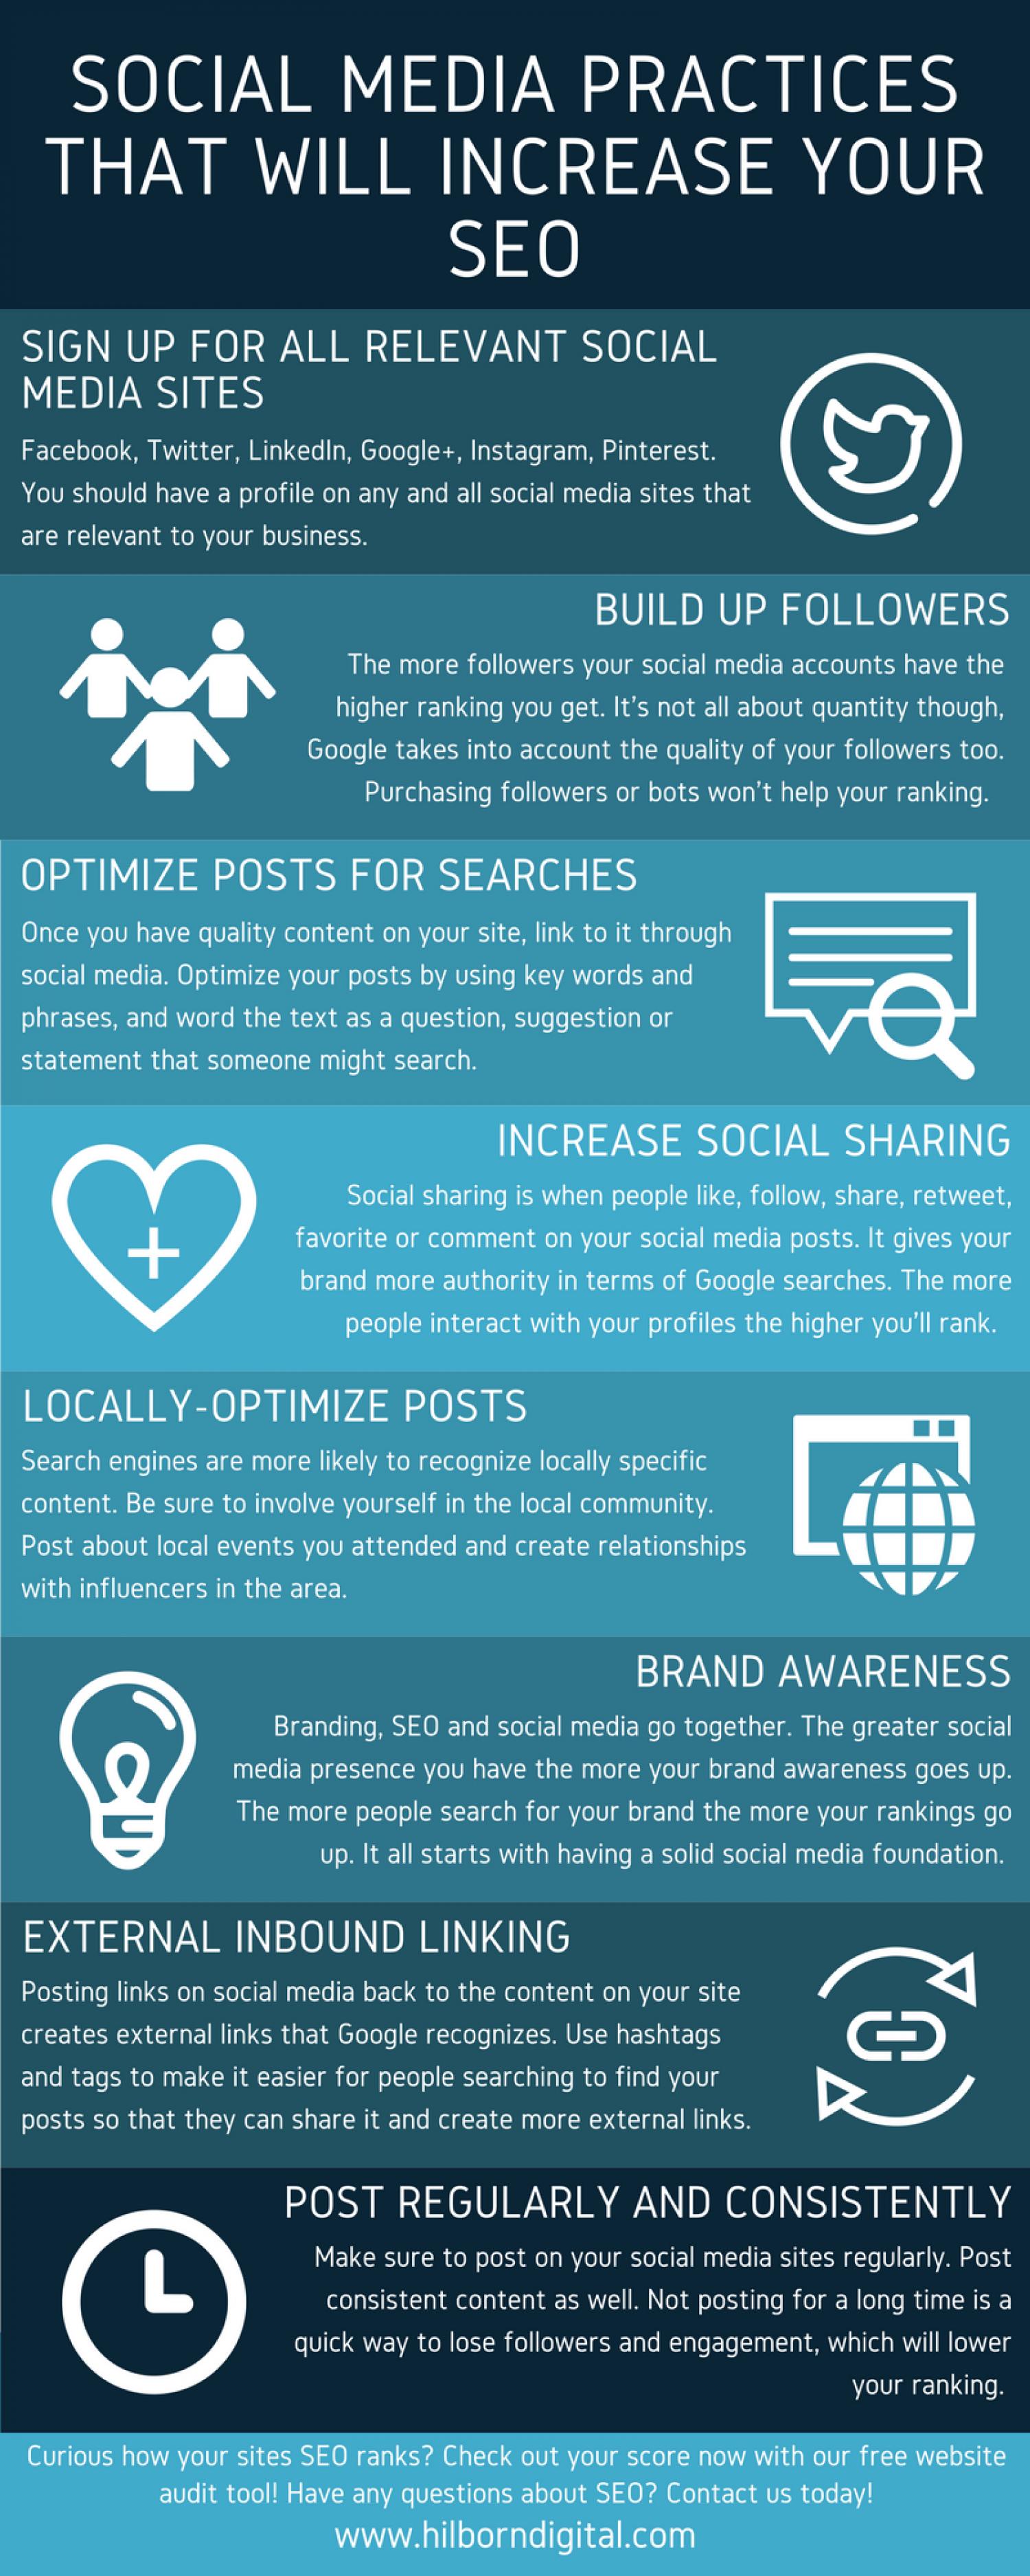 Social Media Practices That Will Increase Your SEO Infographic